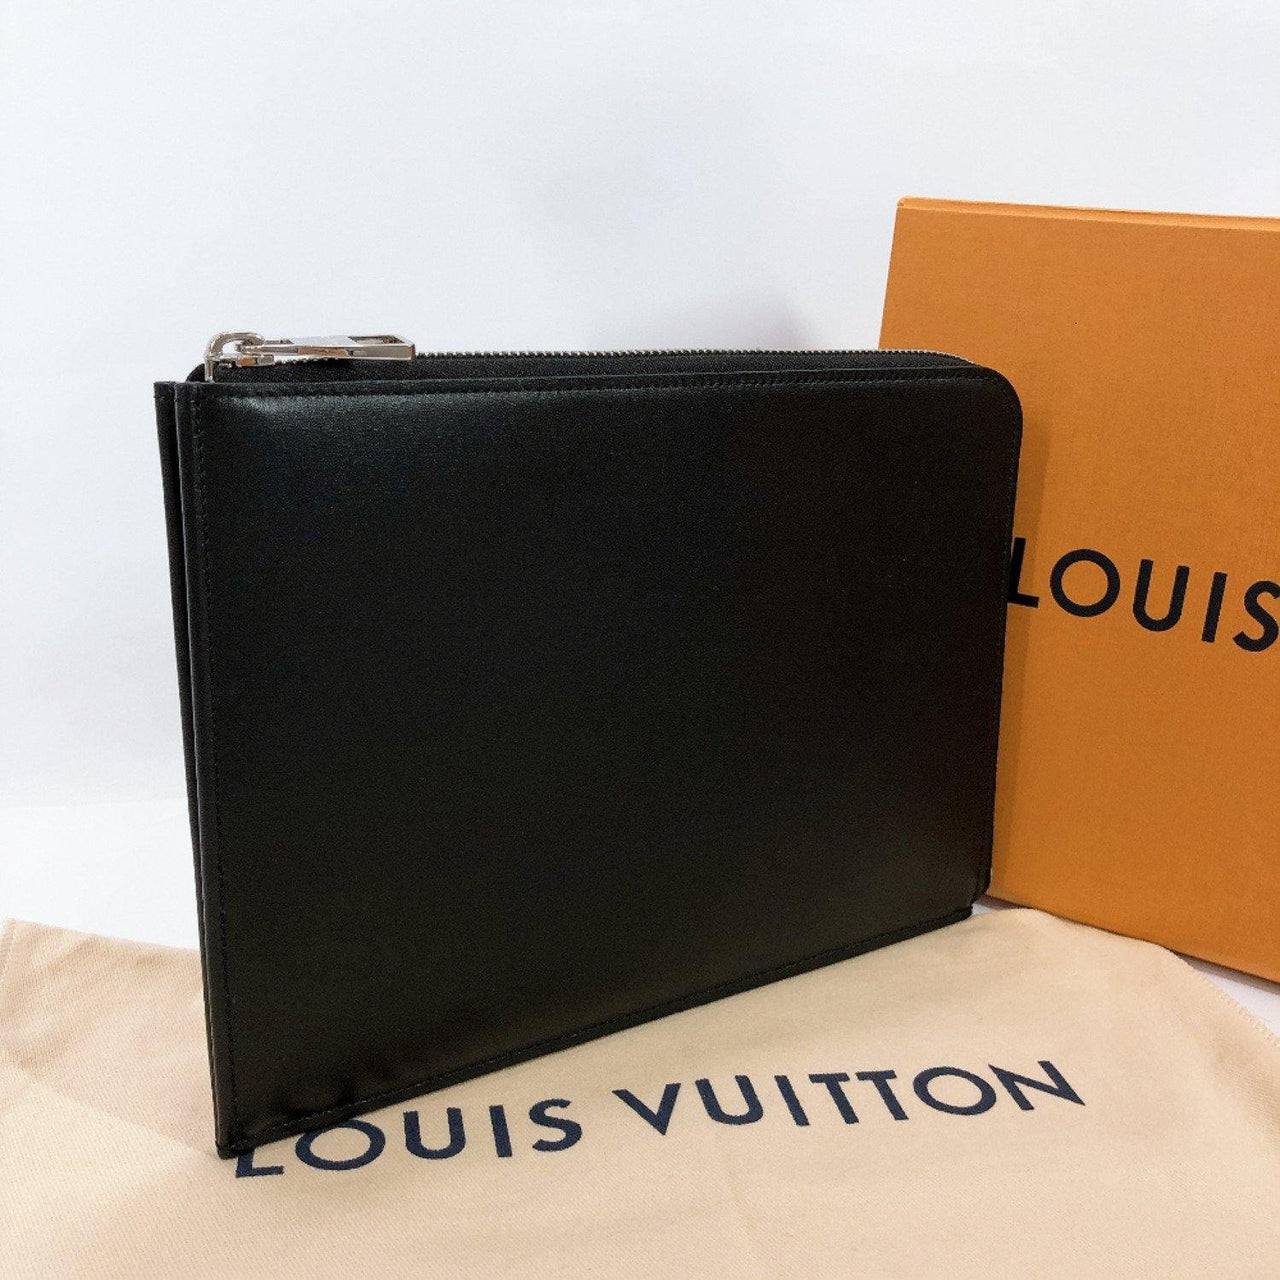 LOUIS VUITTON Clutch bag M58842 Nomad Pochette Jules PM leather black unisex Used - JP-BRANDS.com